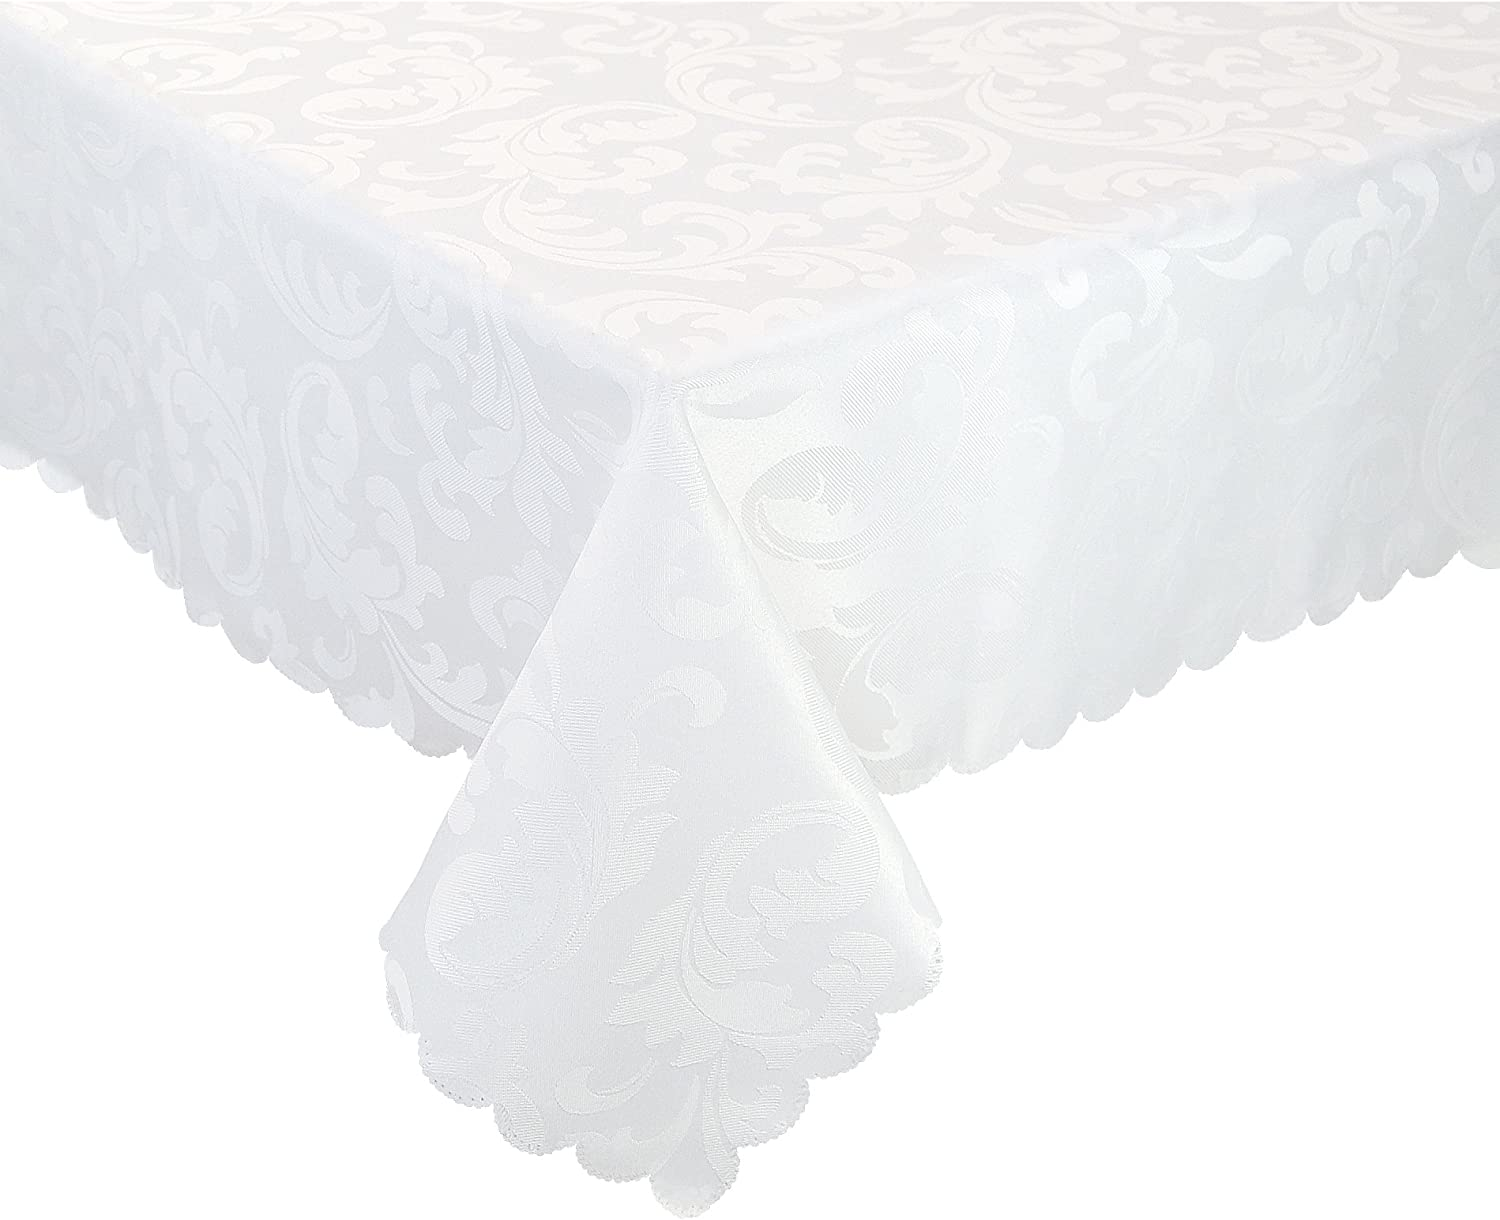 EcoSol Designs Microfiber Damask Tablecloth, Wrinkle-Free & Stain Resistant (52x70, White) Foliate